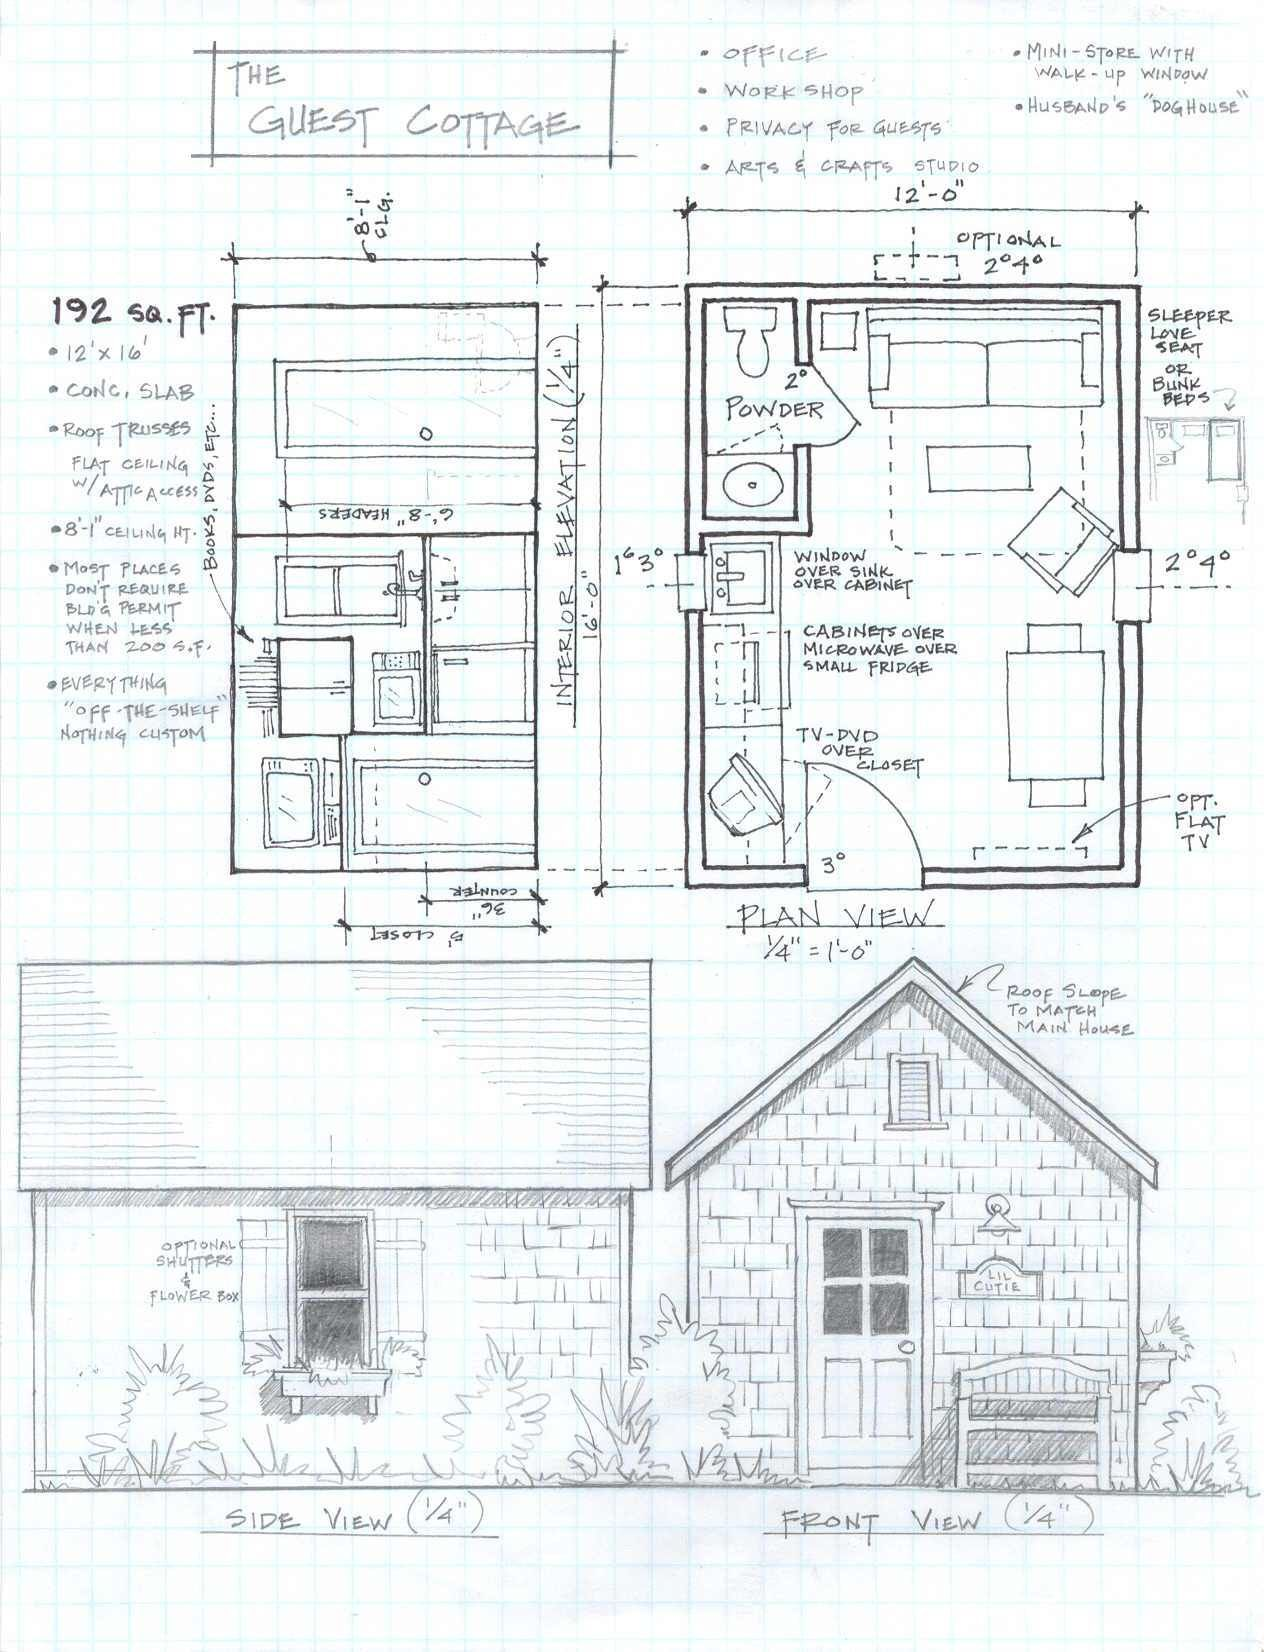 The Guest Cottage 2 Jpg 1 264 1 652 Pixels Small Cabin Plans Small House Plans Free Cabin House Plans